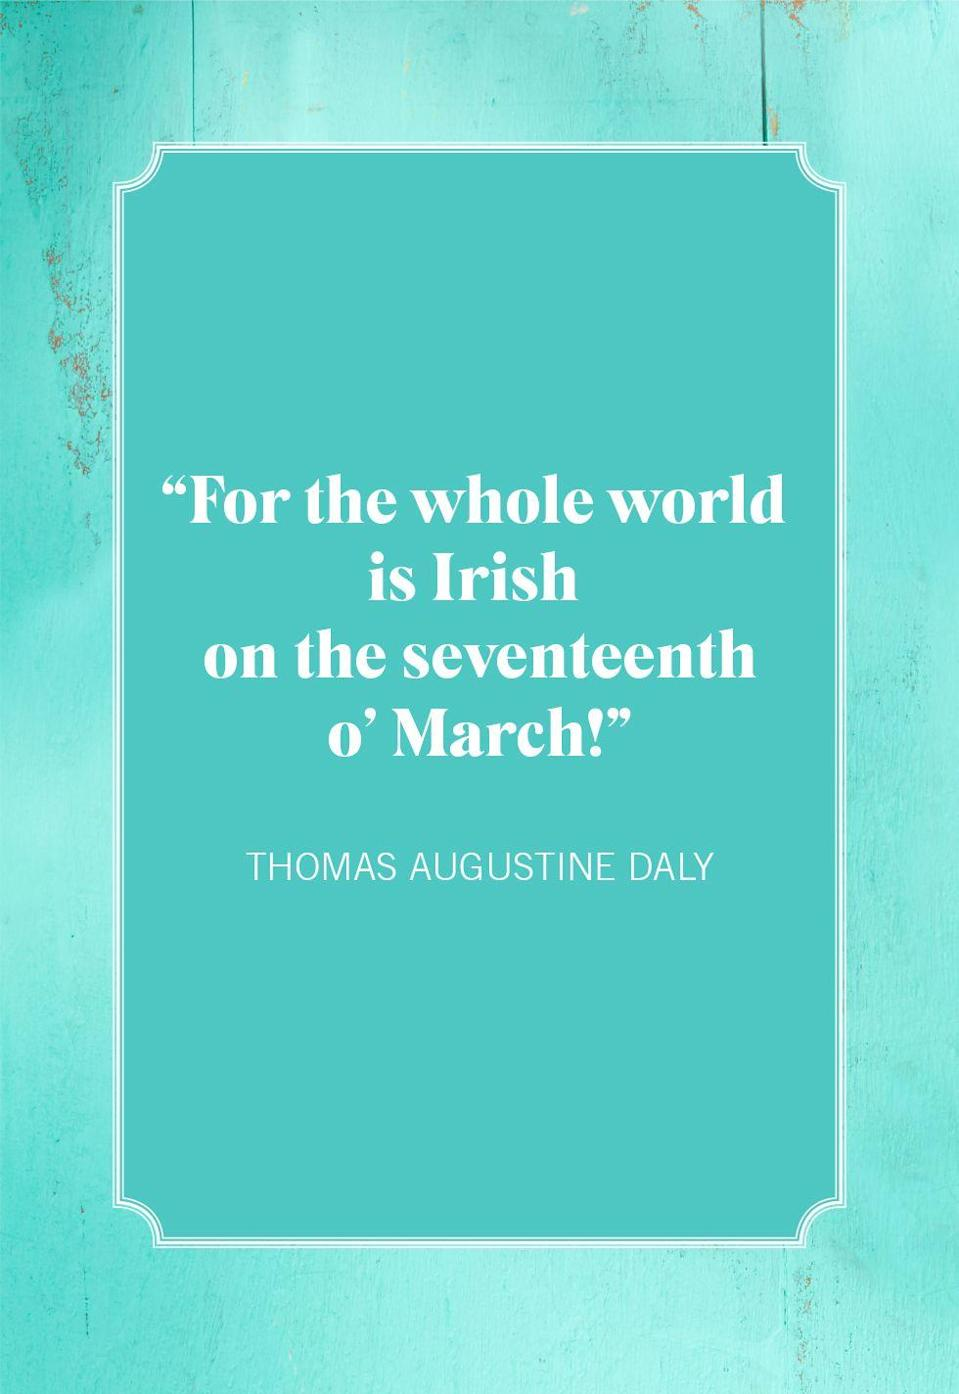 "<p>""For the whole world is Irish on the Seventeenth o' March!""</p>"